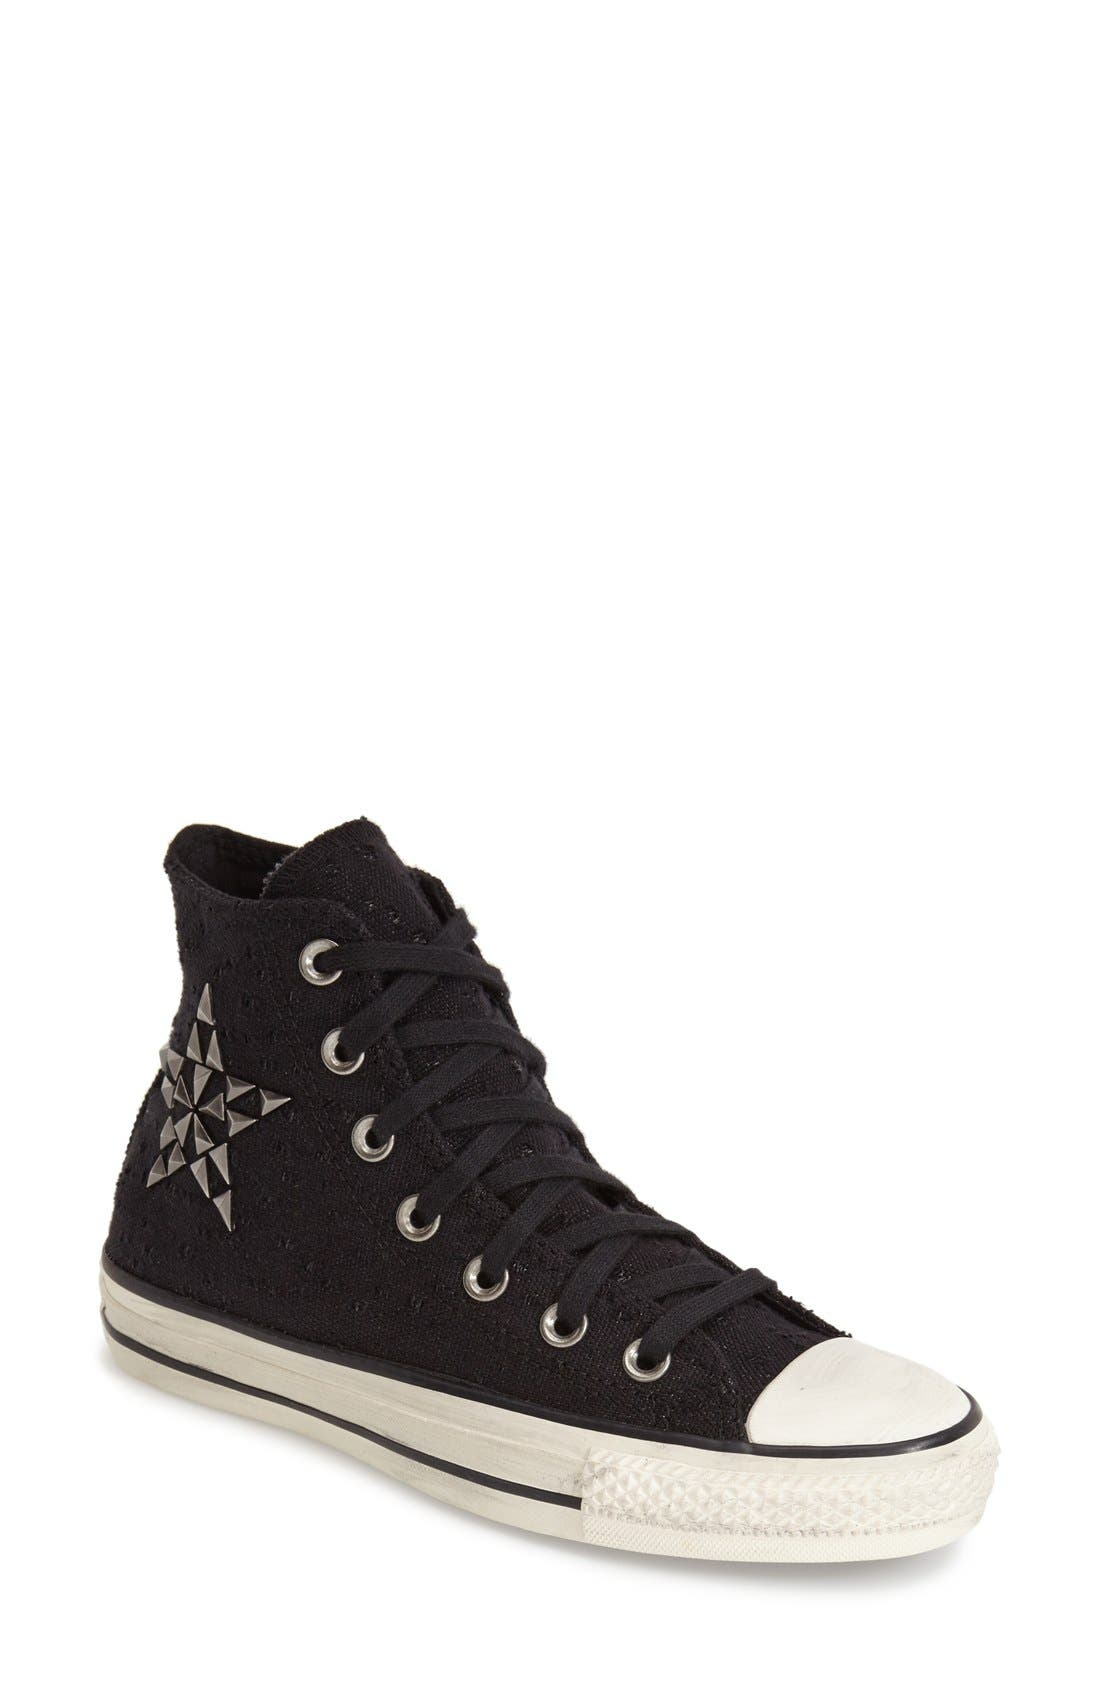 Alternate Image 1 Selected - Converse Chuck Taylor® All Star® 'Star Hardware' High Top Sneaker (Women)